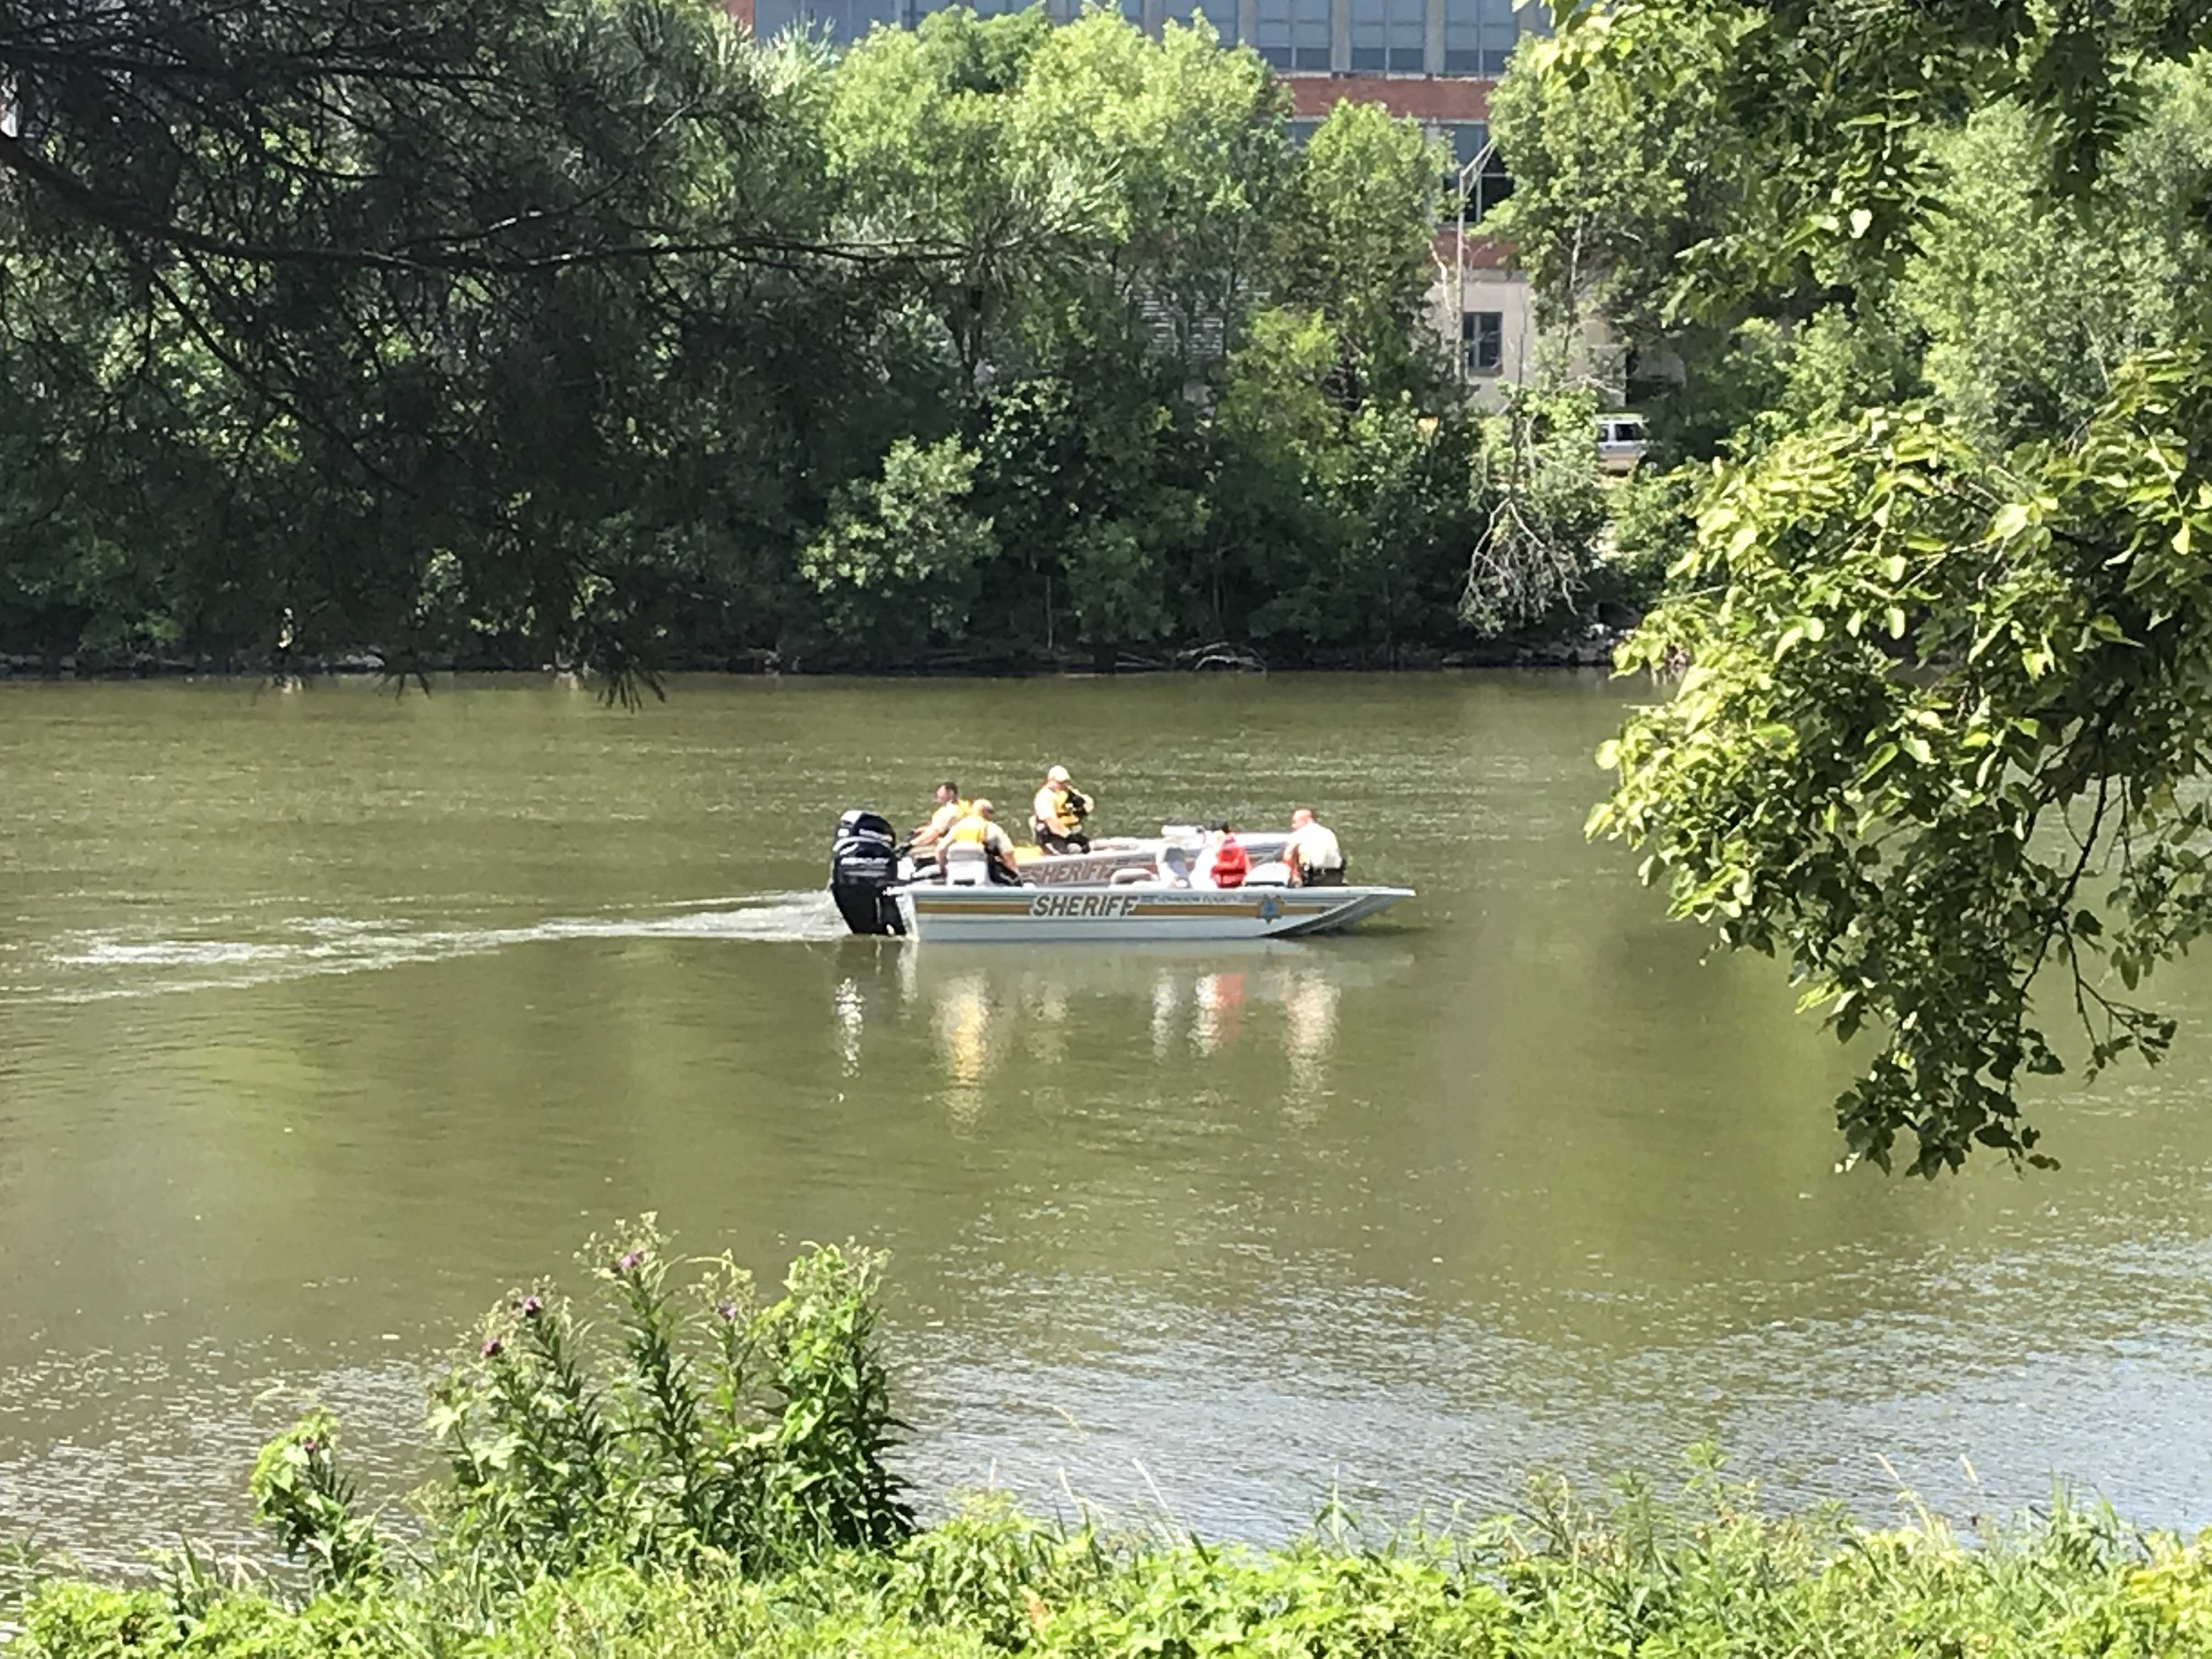 Johnson County Sheriffs pull a dead body up the Iowa River on Tuesday, July 17. (Gage Miskimen/The Daily Iowan)